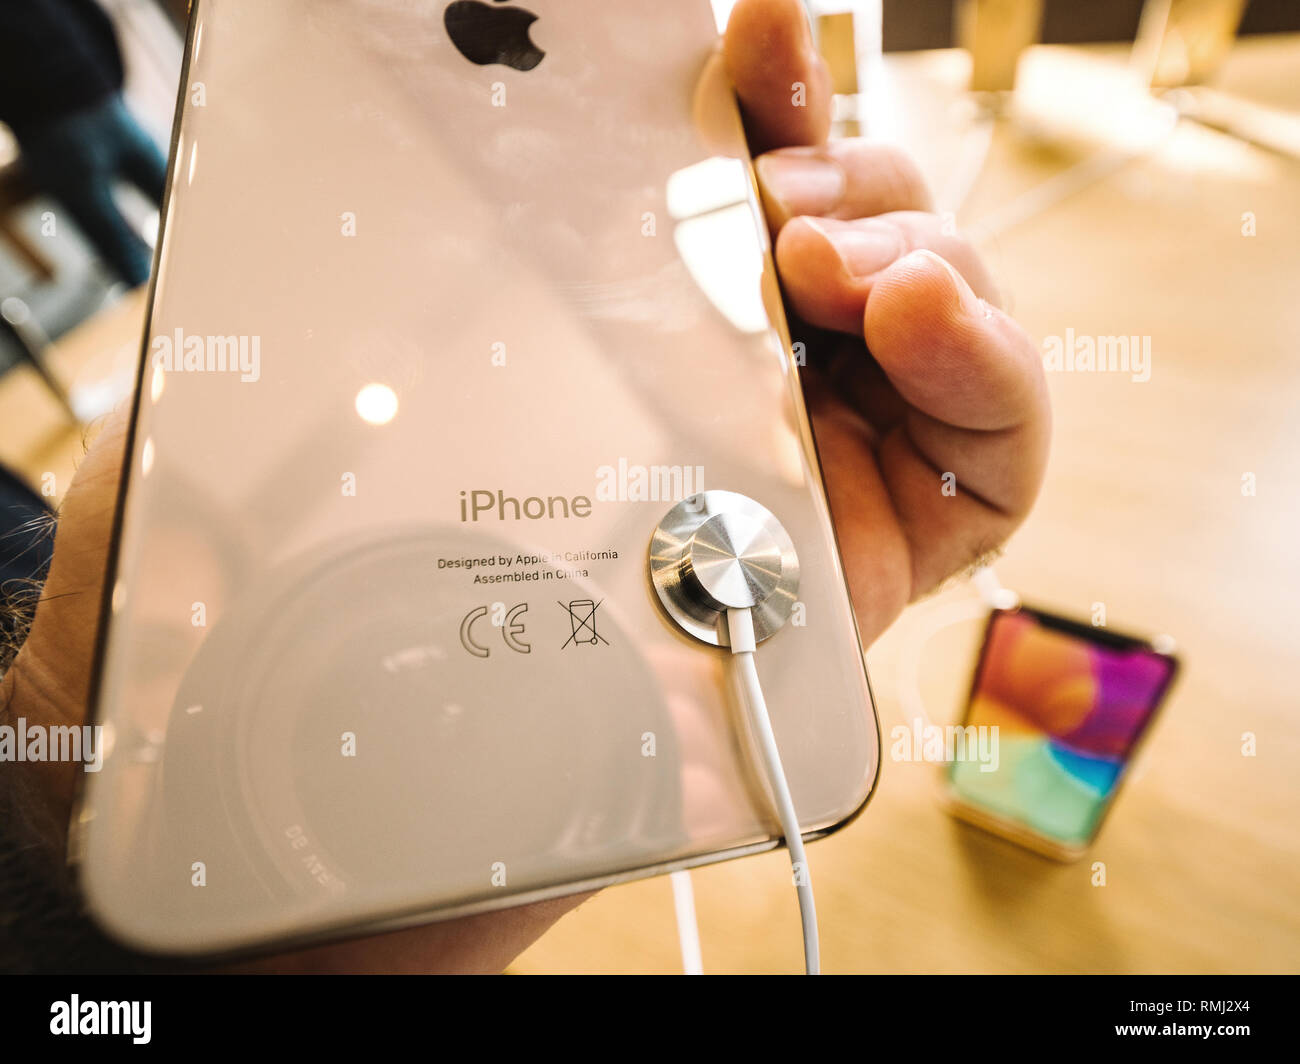 STRASBOURG, FRANCE - SEP 21, 2018: Rear view of the gold iPhone Xs Max telephone smartphone in Apple Store  - Stock Image